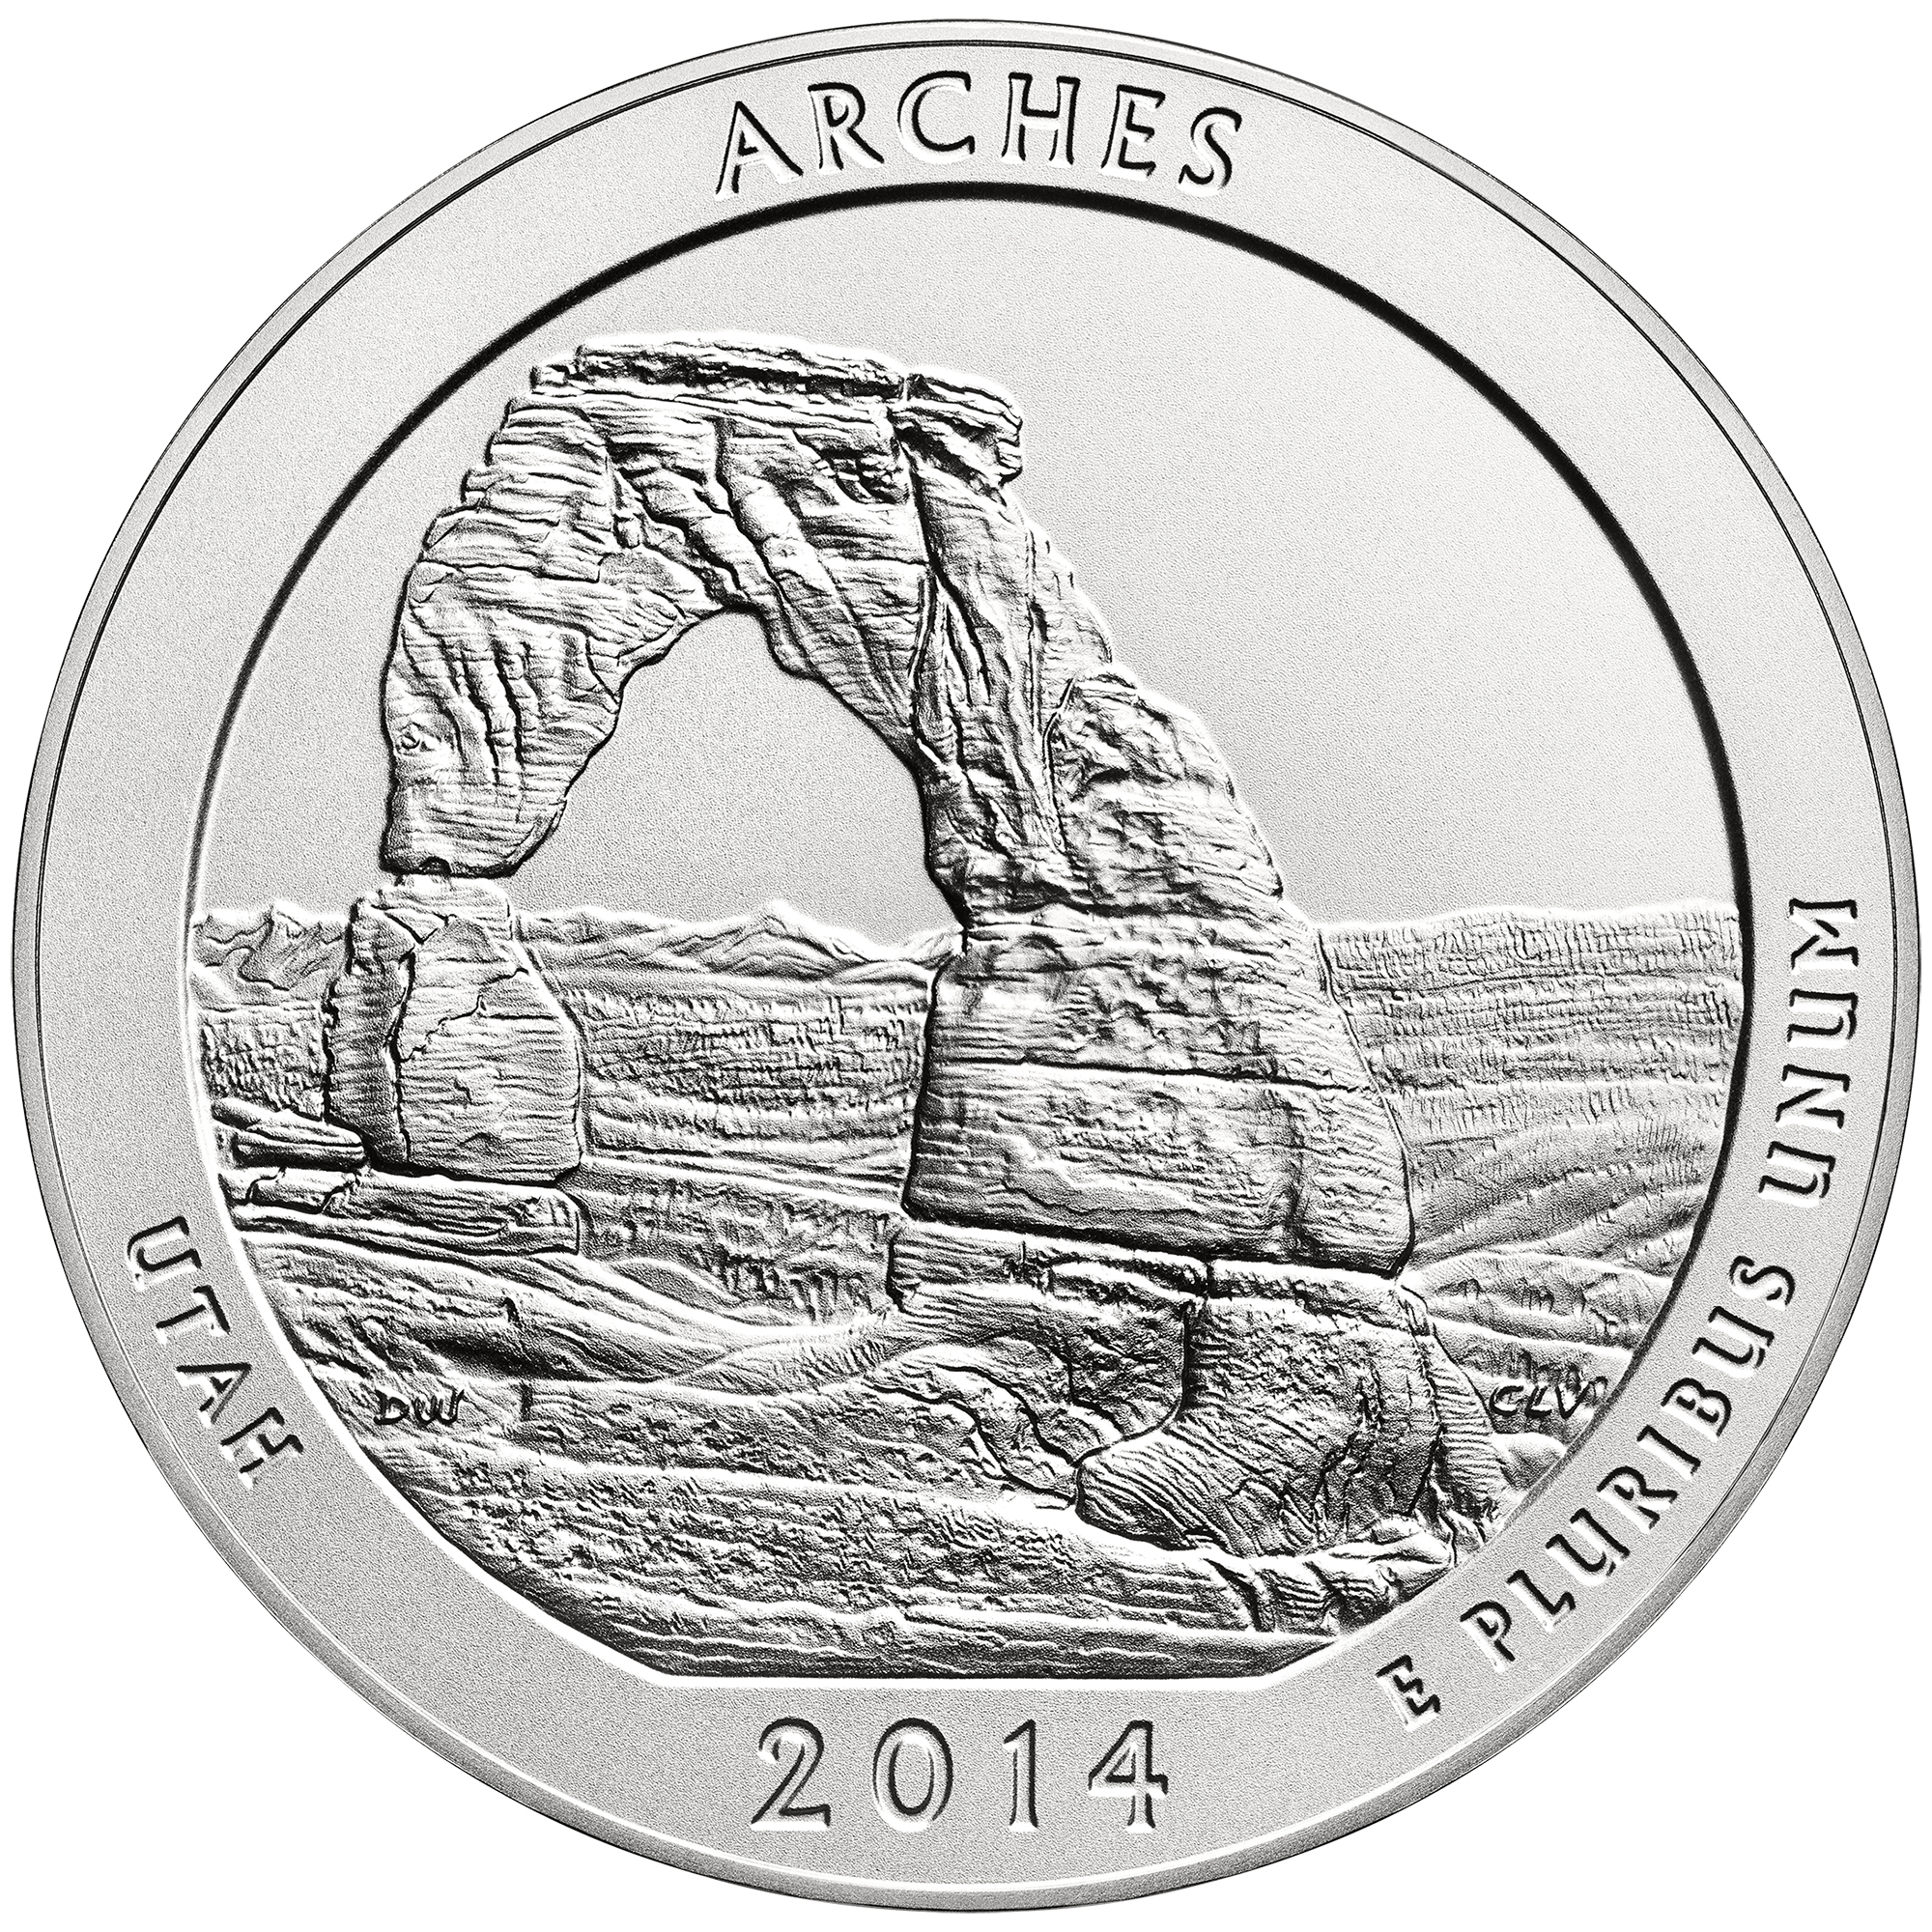 2014 America The Beautiful Quarters Five Ounce Silver Uncirculated Coin Arches Utah Reverse